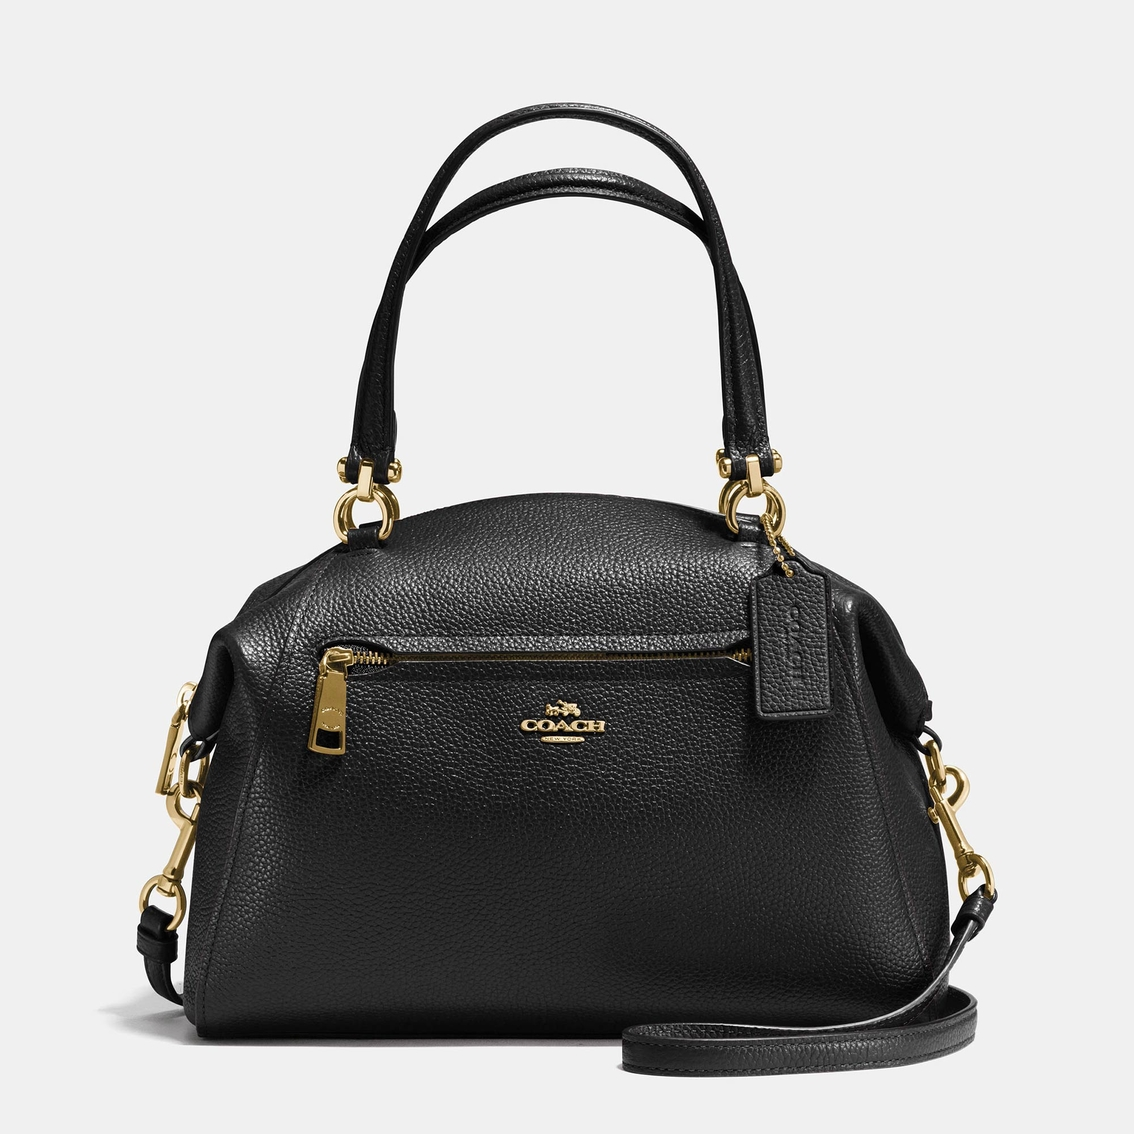 4755275bd0f3 ... promo code for coach prairie satchel in polished pebble leather c2cc2  604fa